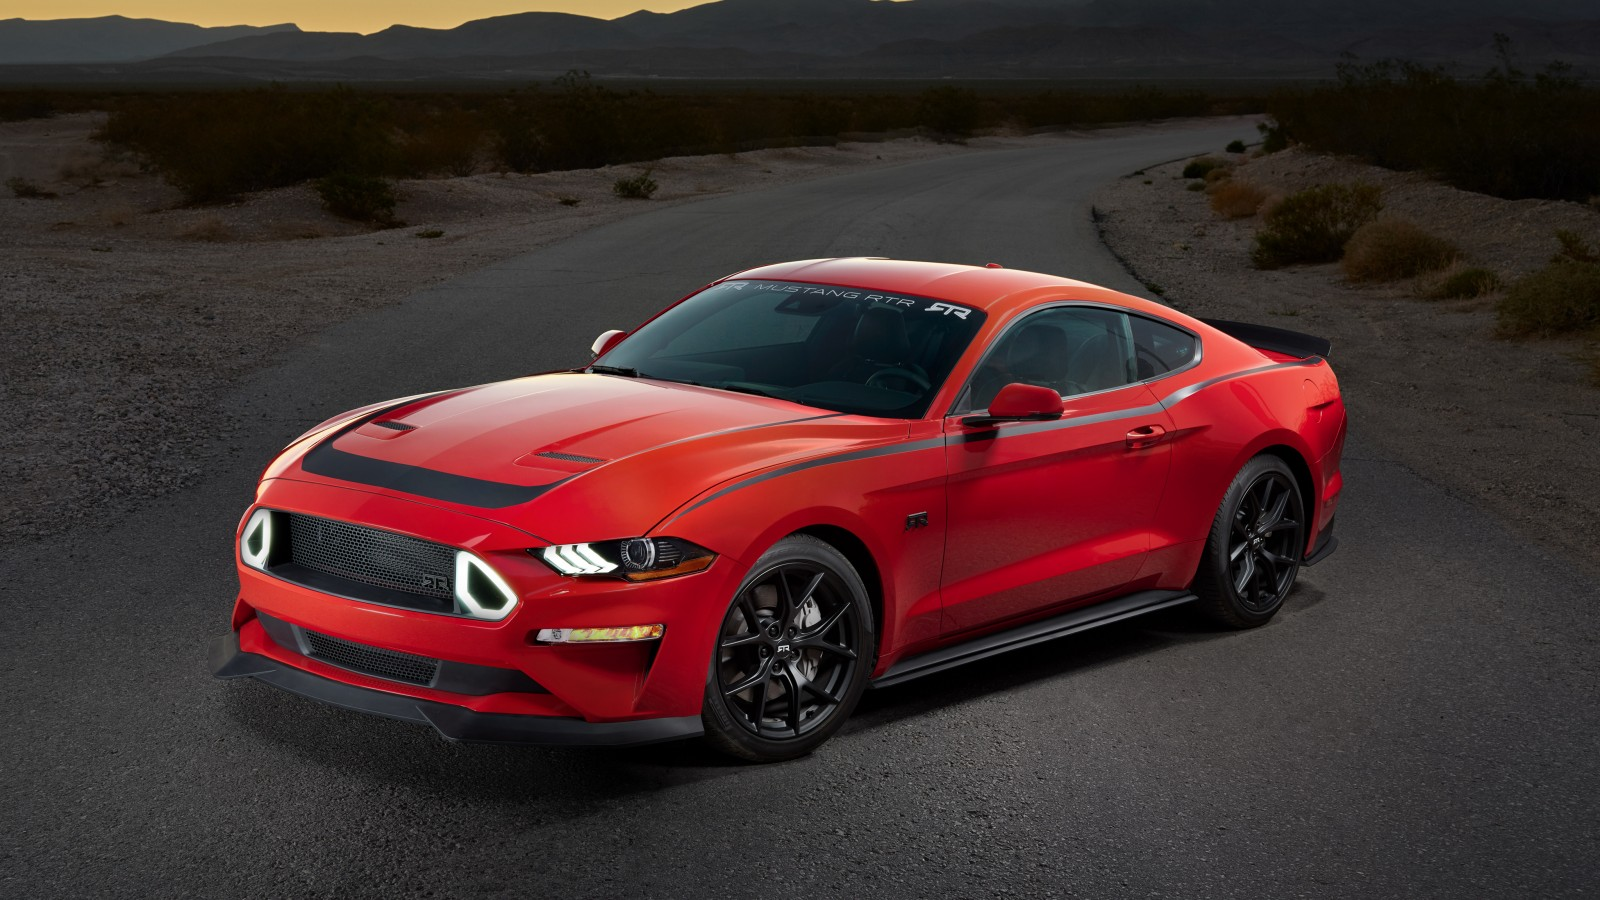 2019 ford series 1 mustang rtr 4k 2 wallpaper hd car. Black Bedroom Furniture Sets. Home Design Ideas